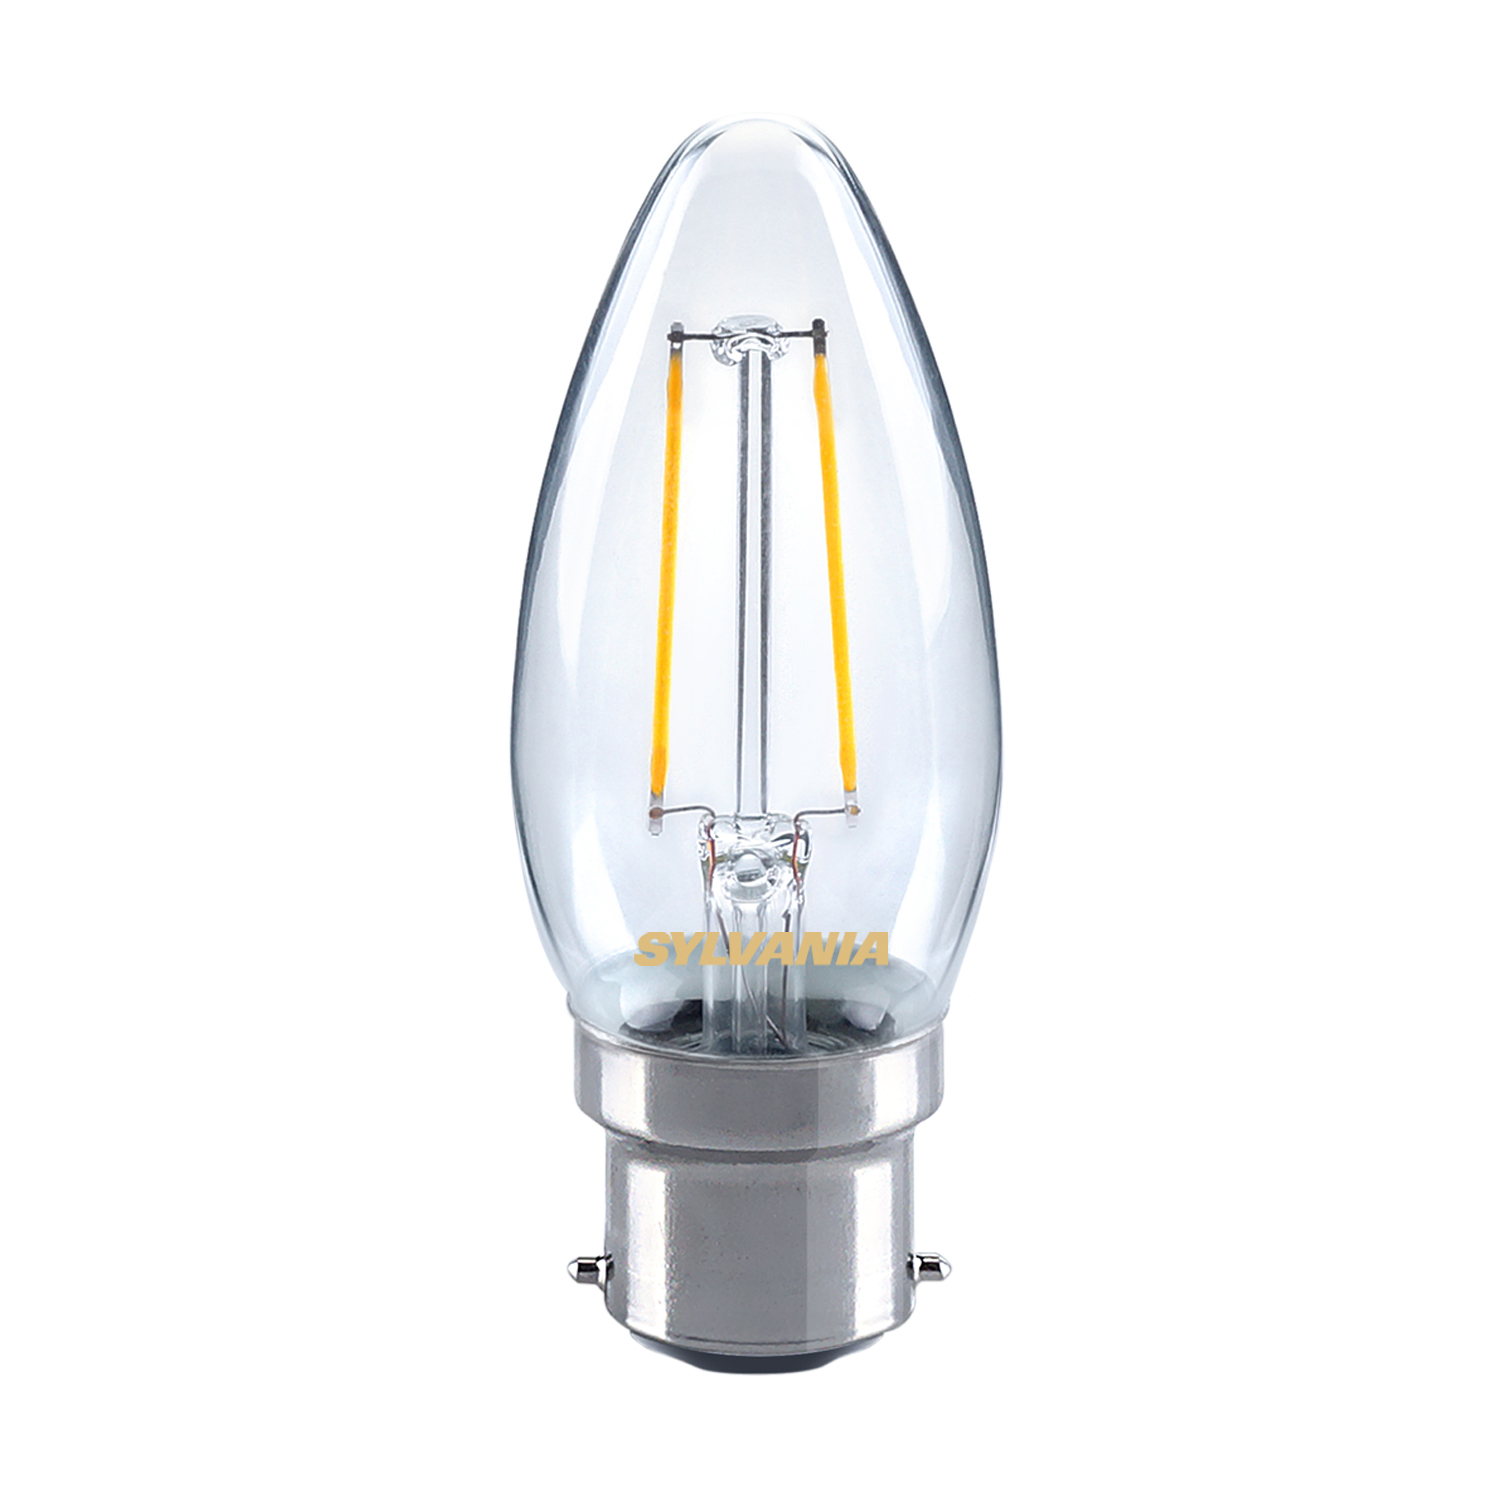 Sylvania 2 5w led traditional candle light bulb b22 bc warm white 2700k liminaires Sylvania bulb